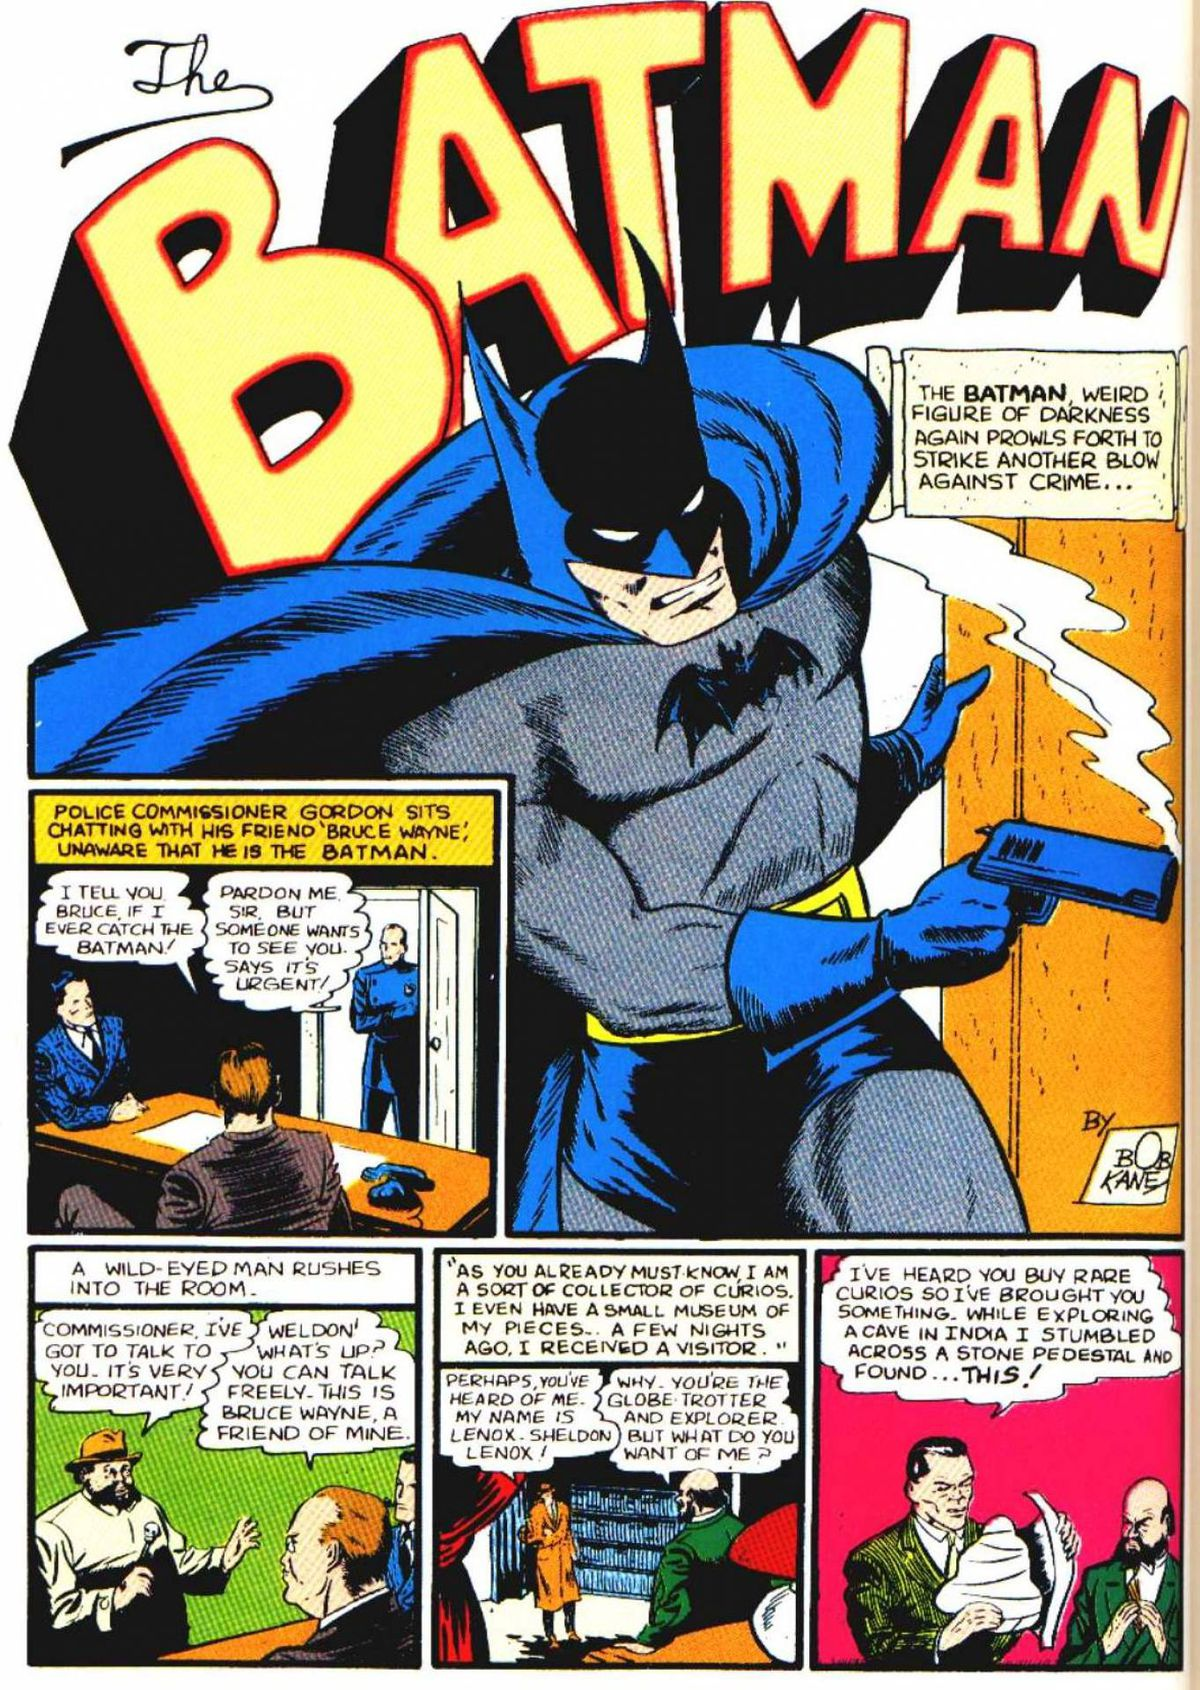 The Ridiculous History Of How American Paranoia Almost Ruined And Censored Comic Books Forever 7